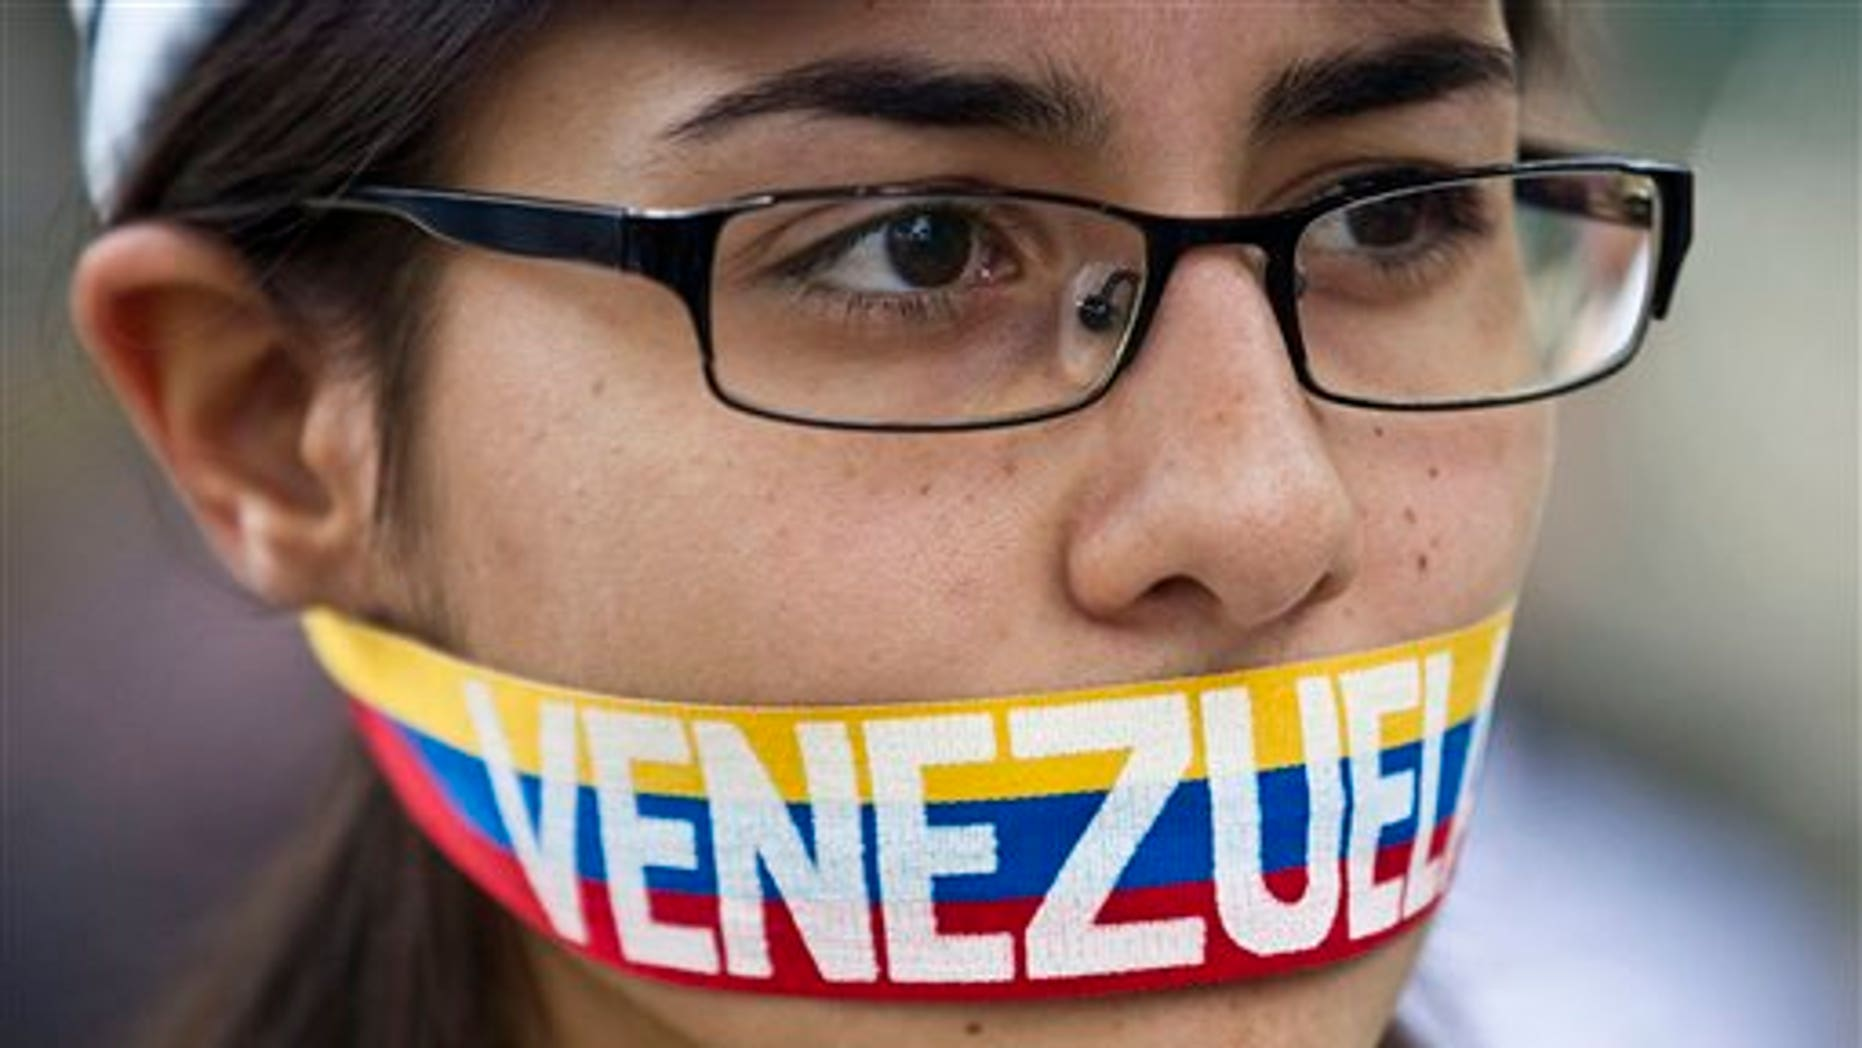 "An anti-government demonstrator stands with a tri-colored ribbon covering her mouth that reads ""Venezuela"" during a protest in front of an office of the Organization of American States, OAS, in Caracas, Venezuela, Friday, March 21, 2014. Opposition lawmaker Maria Corina Machado is scheduled to speak before the OAS council in a closed-door session Friday in Washington D.C., presenting the situation in her country (AP Photo/Esteban Felix)"